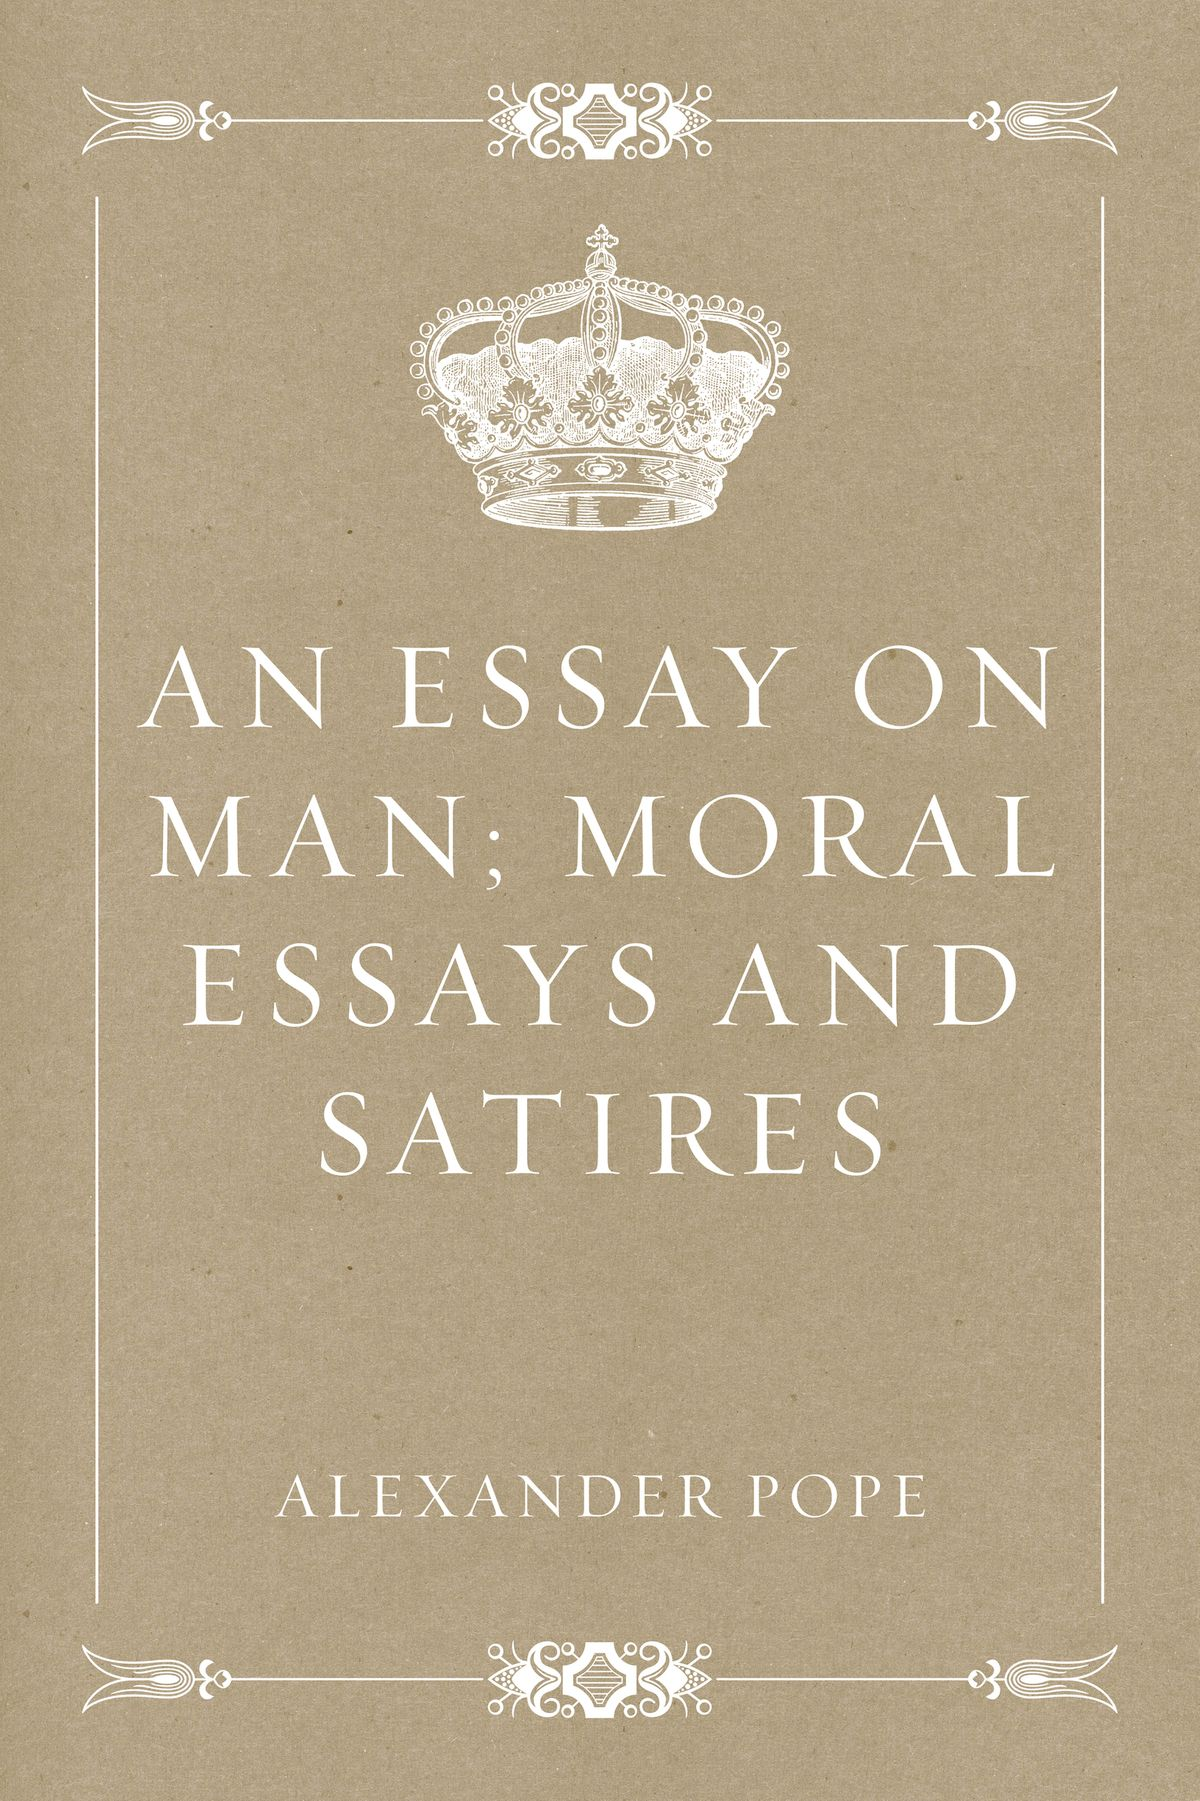 005 An Essay On Man Moral Essays And Satires Fantastic Epistle 2 Meaning Summary Sparknotes Part 1 Full